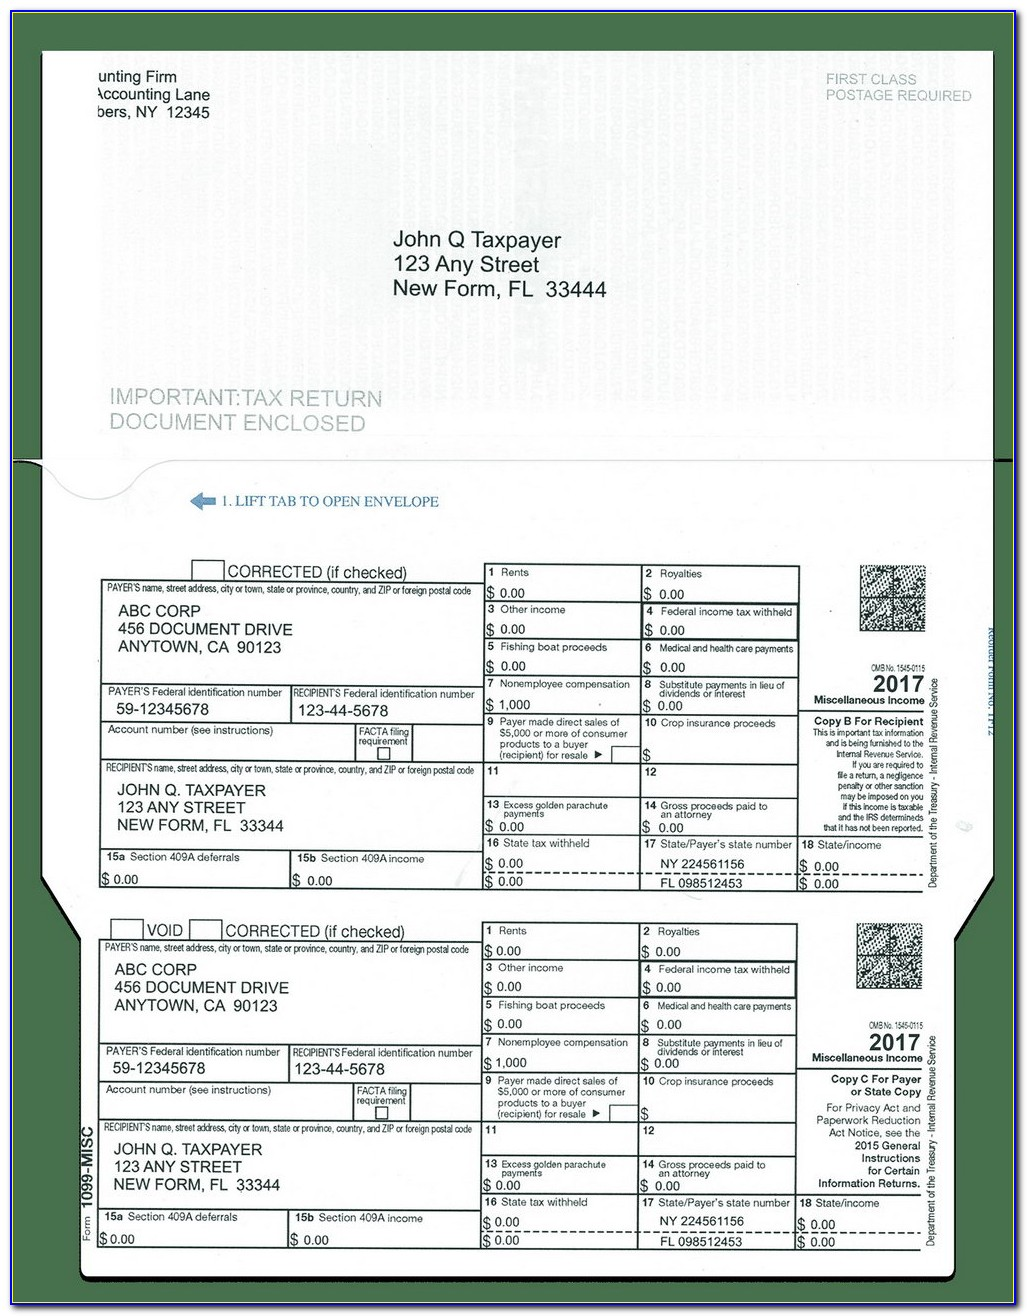 Form 1099 Misc Miscellaneous Income Download